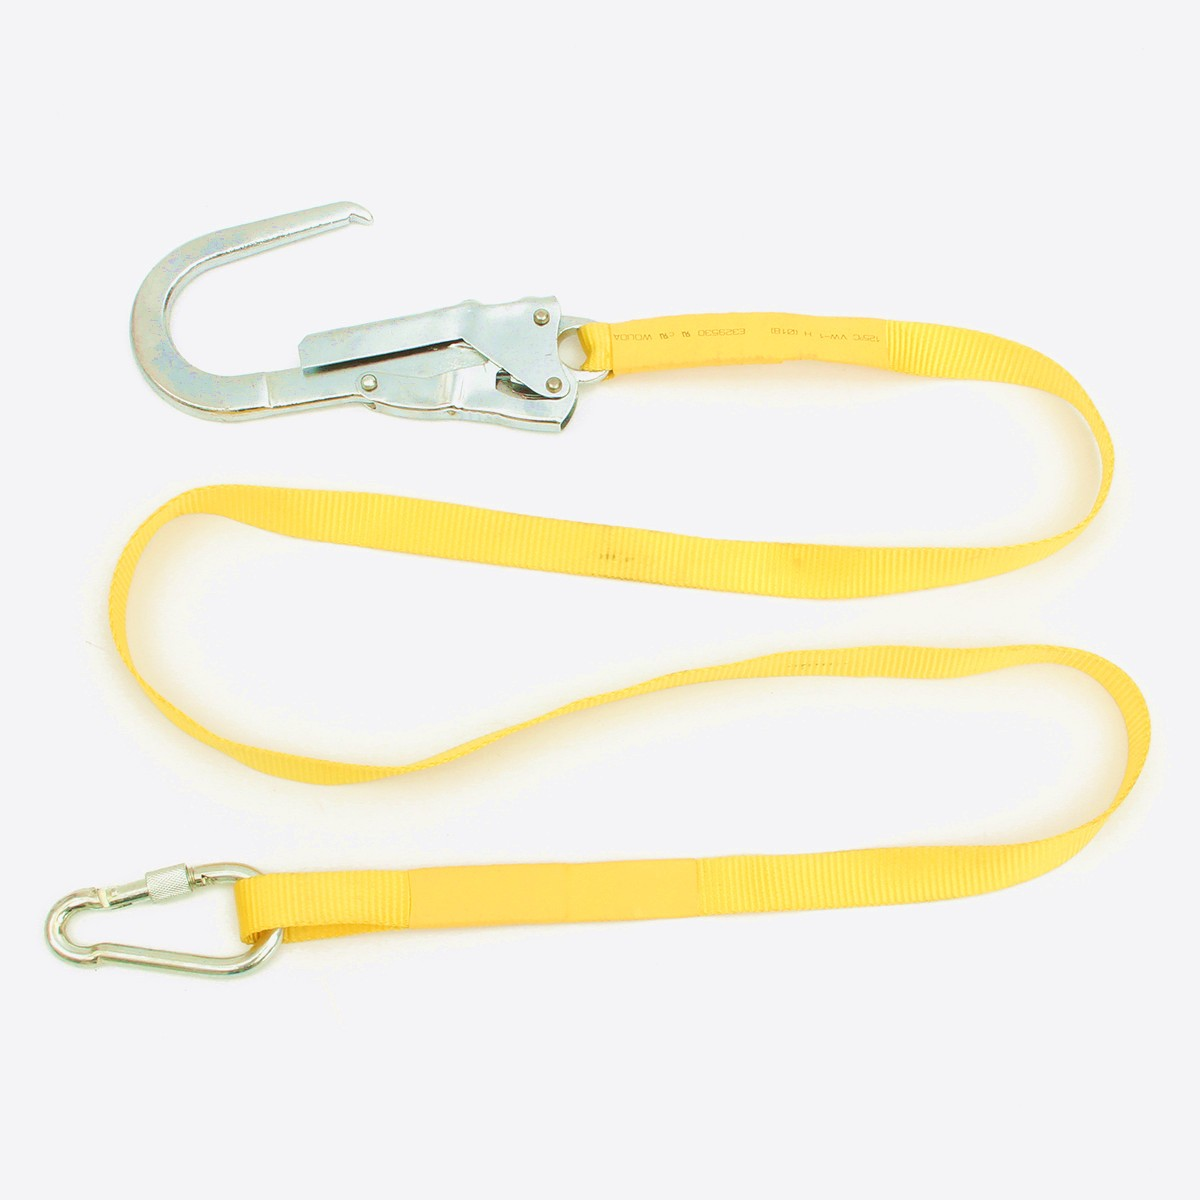 Safurance Outdoor Climbing Safety Harness Lanyard Belt With Carabiner Buckle Protection Workplace Safety Harness new outdoor climbing climb mountain rope safety waist belt protection equipment workplace safety harness